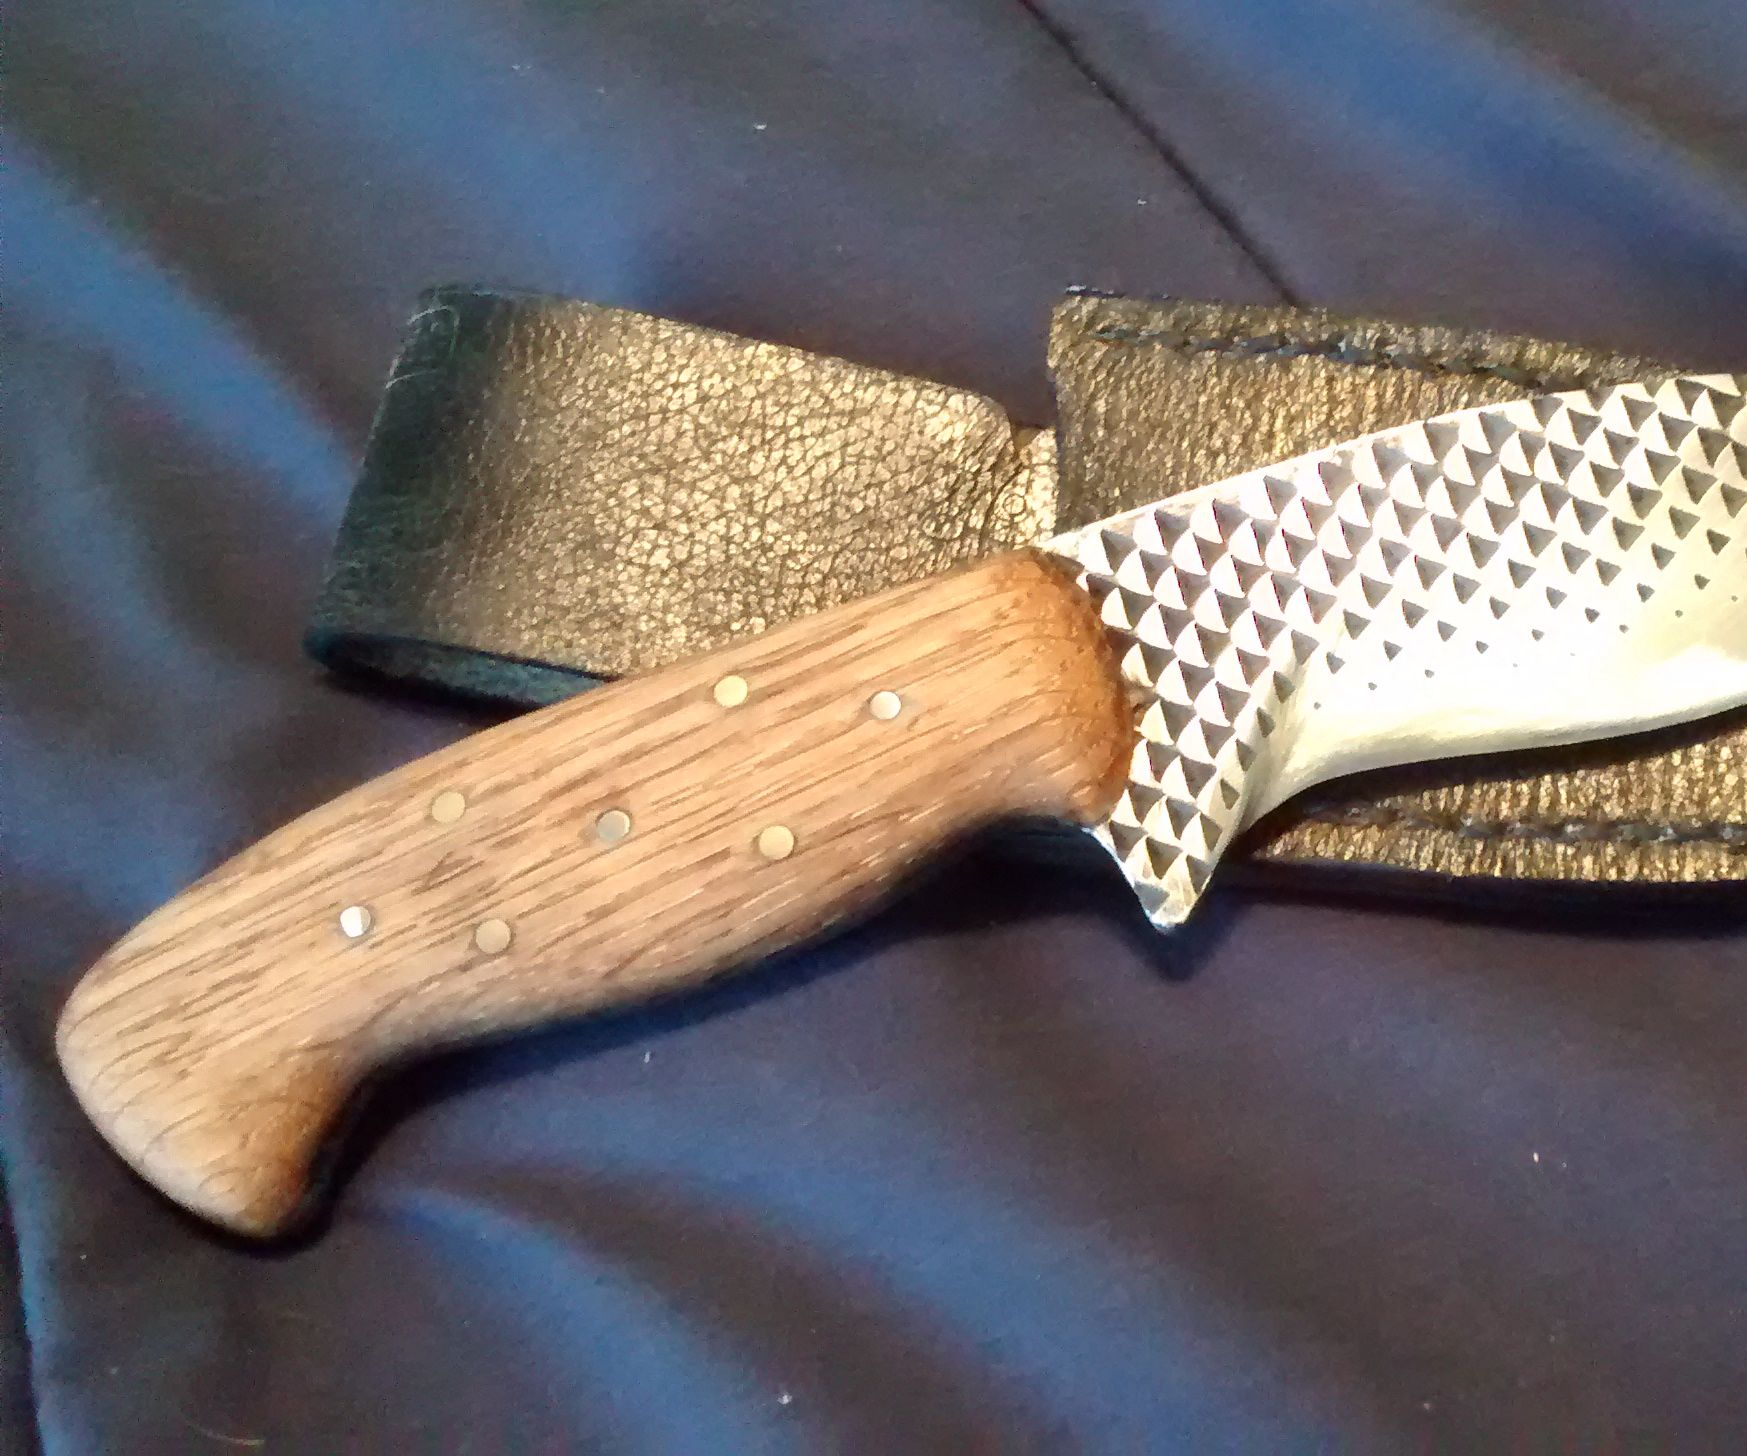 Knife From a Rasp